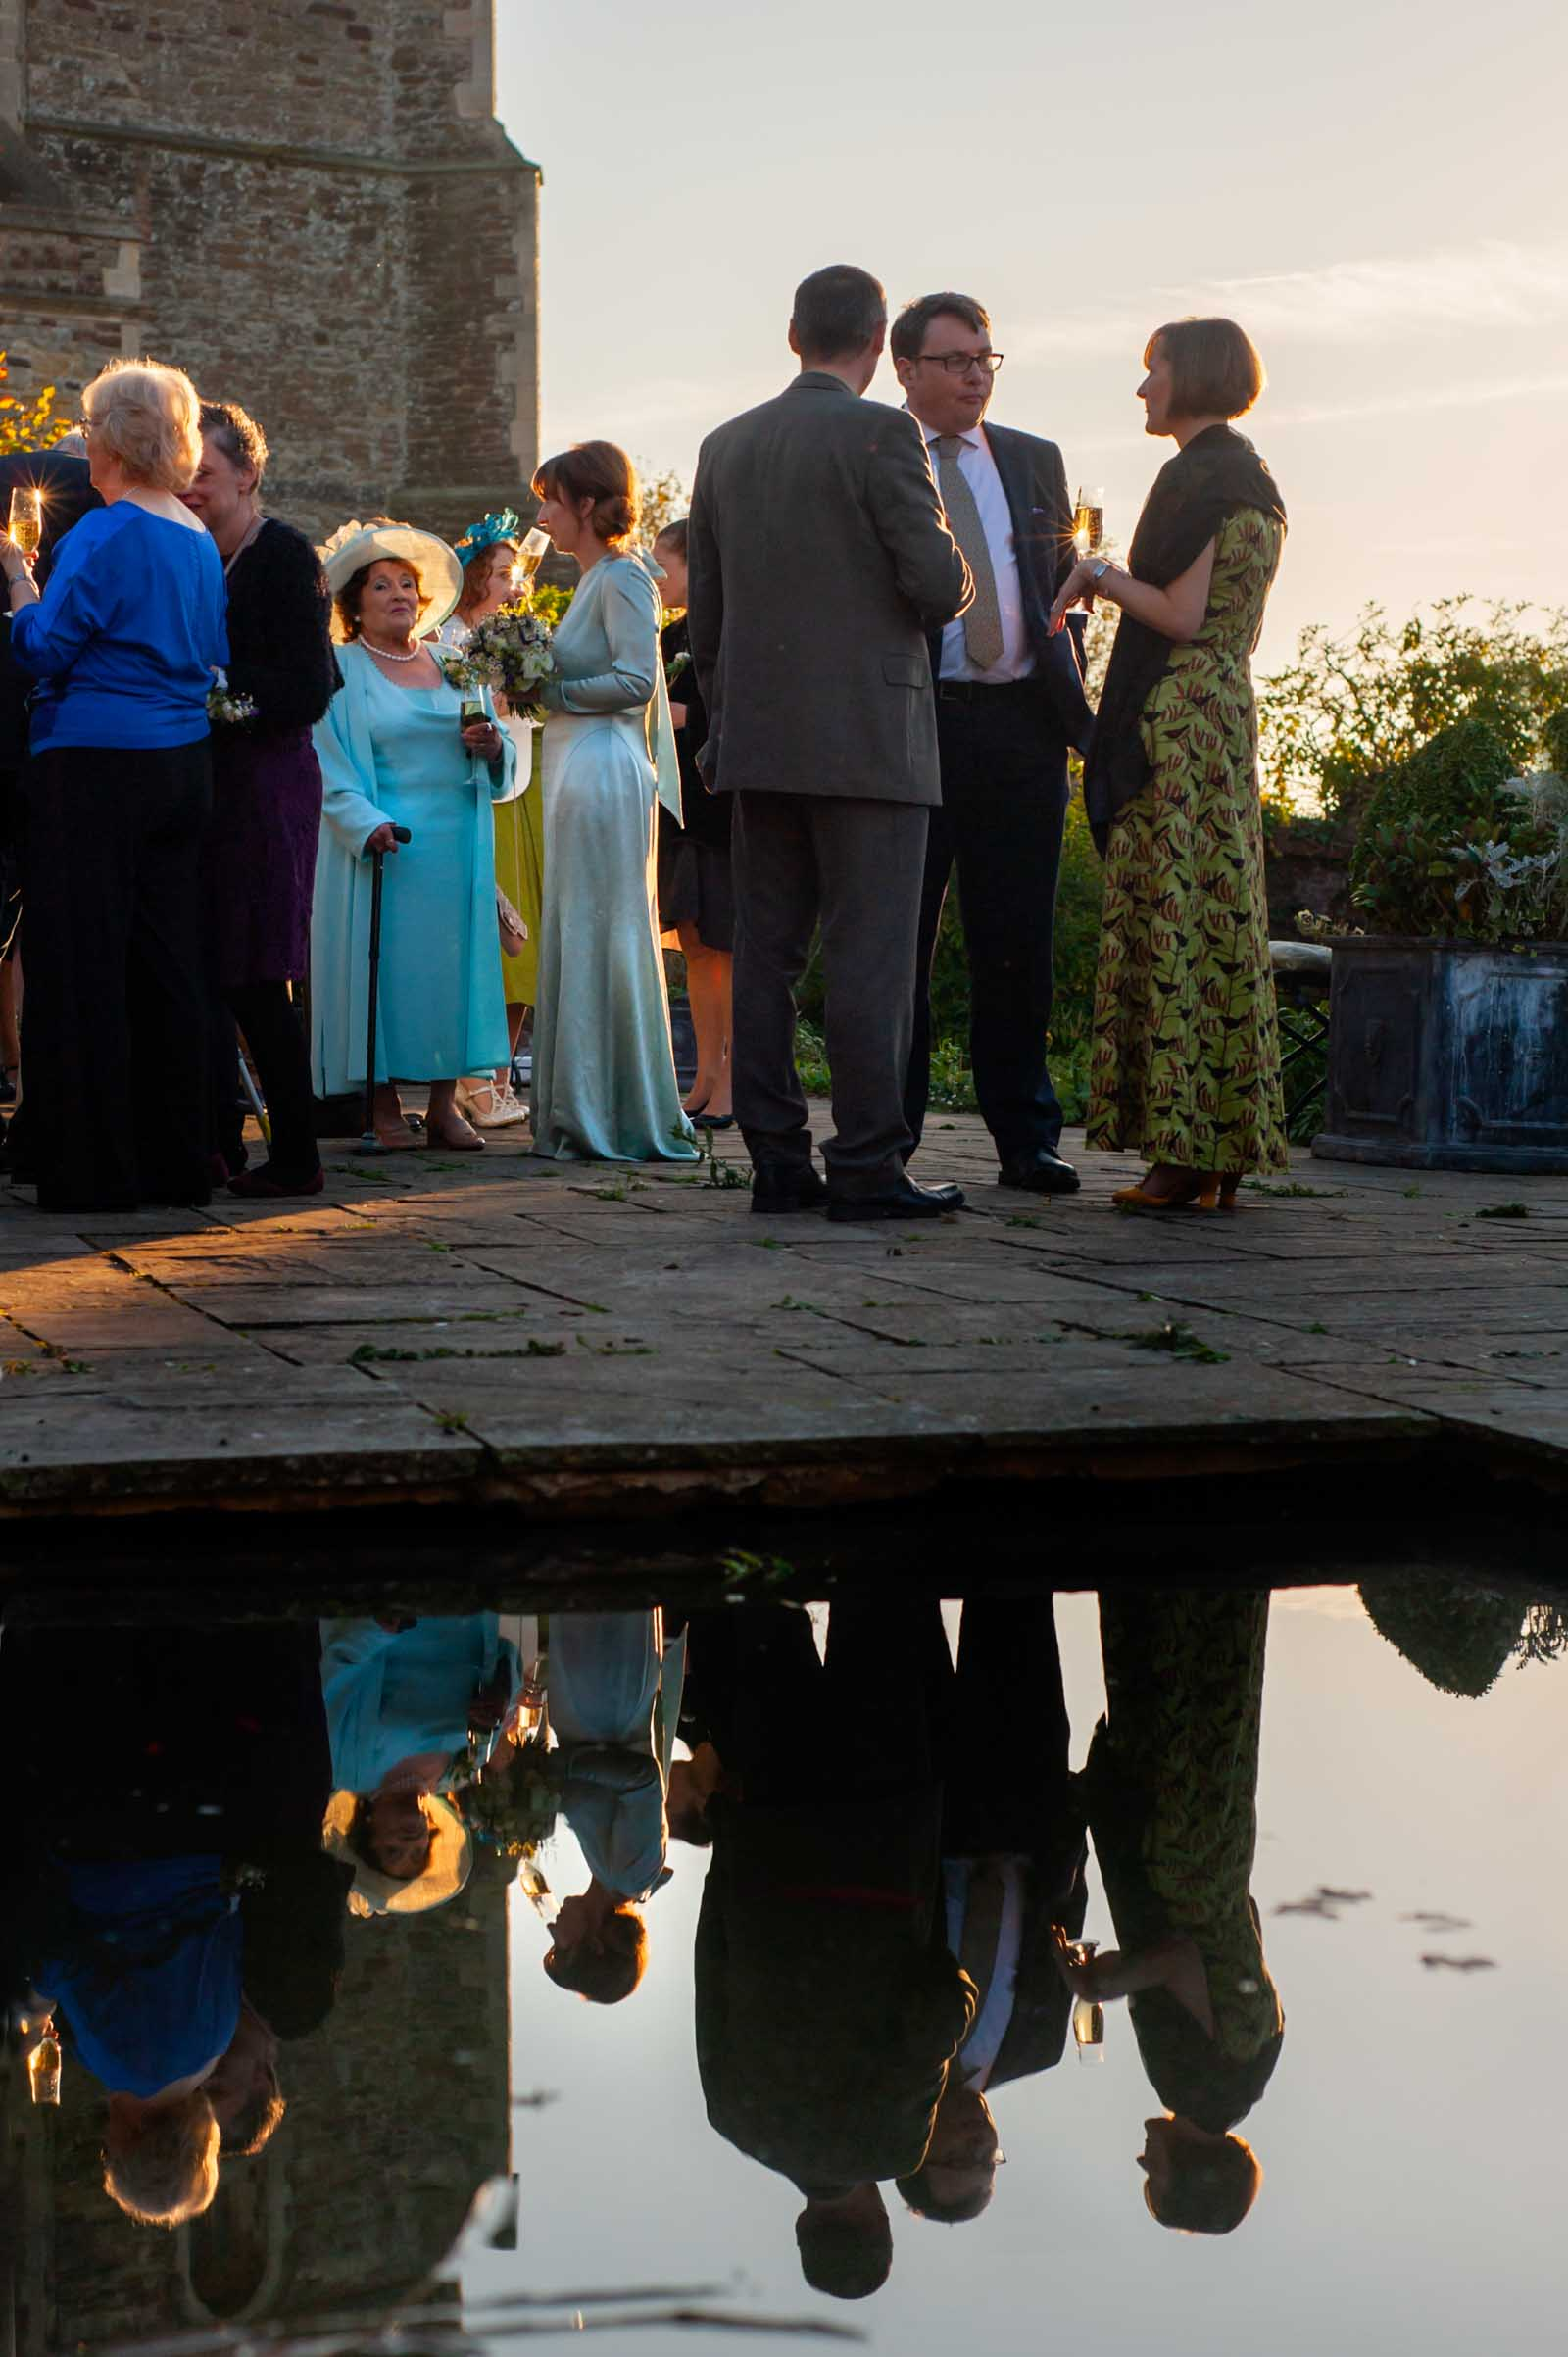 Outdoor wedding reception at the Old Rectory